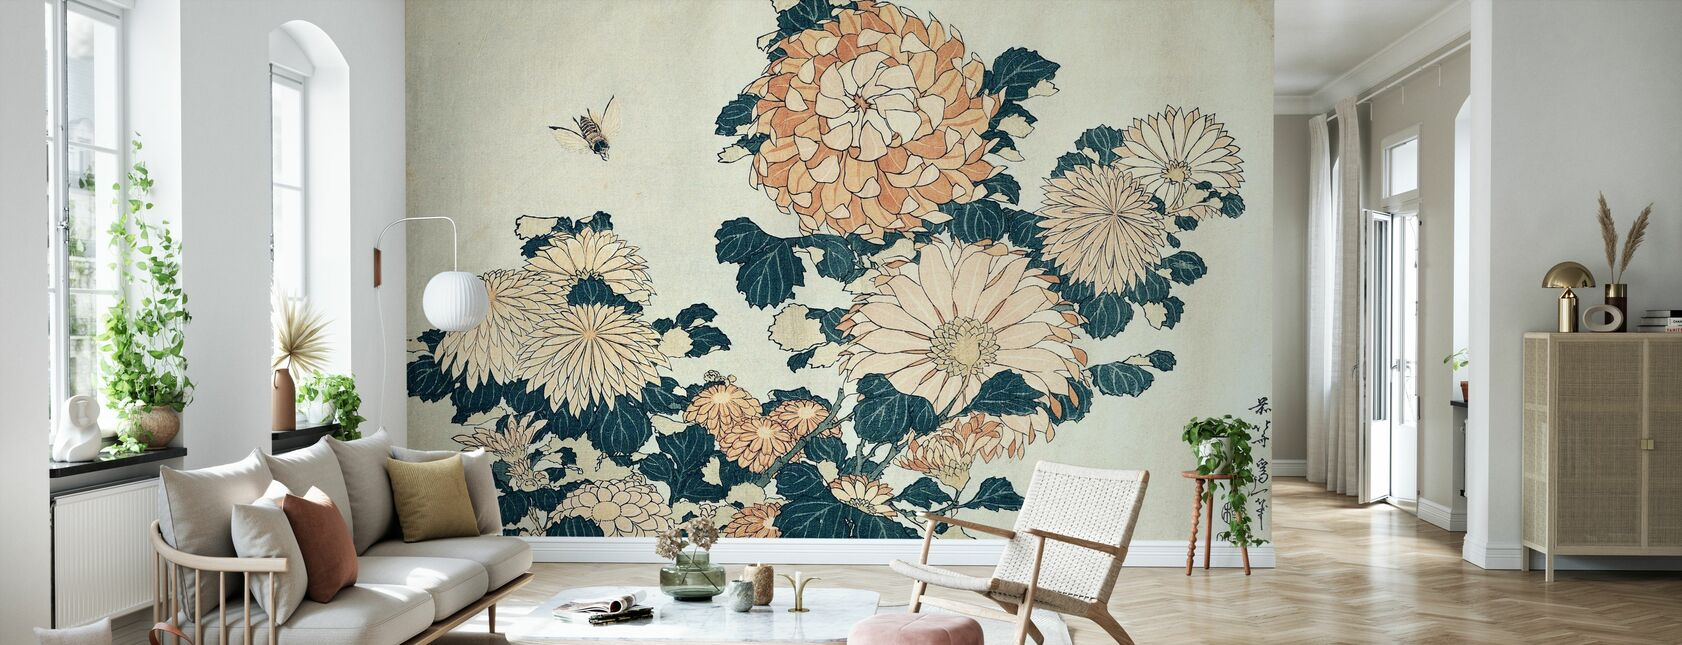 Chrysanthemums, Katsushika Hokusai - Wallpaper - Living Room